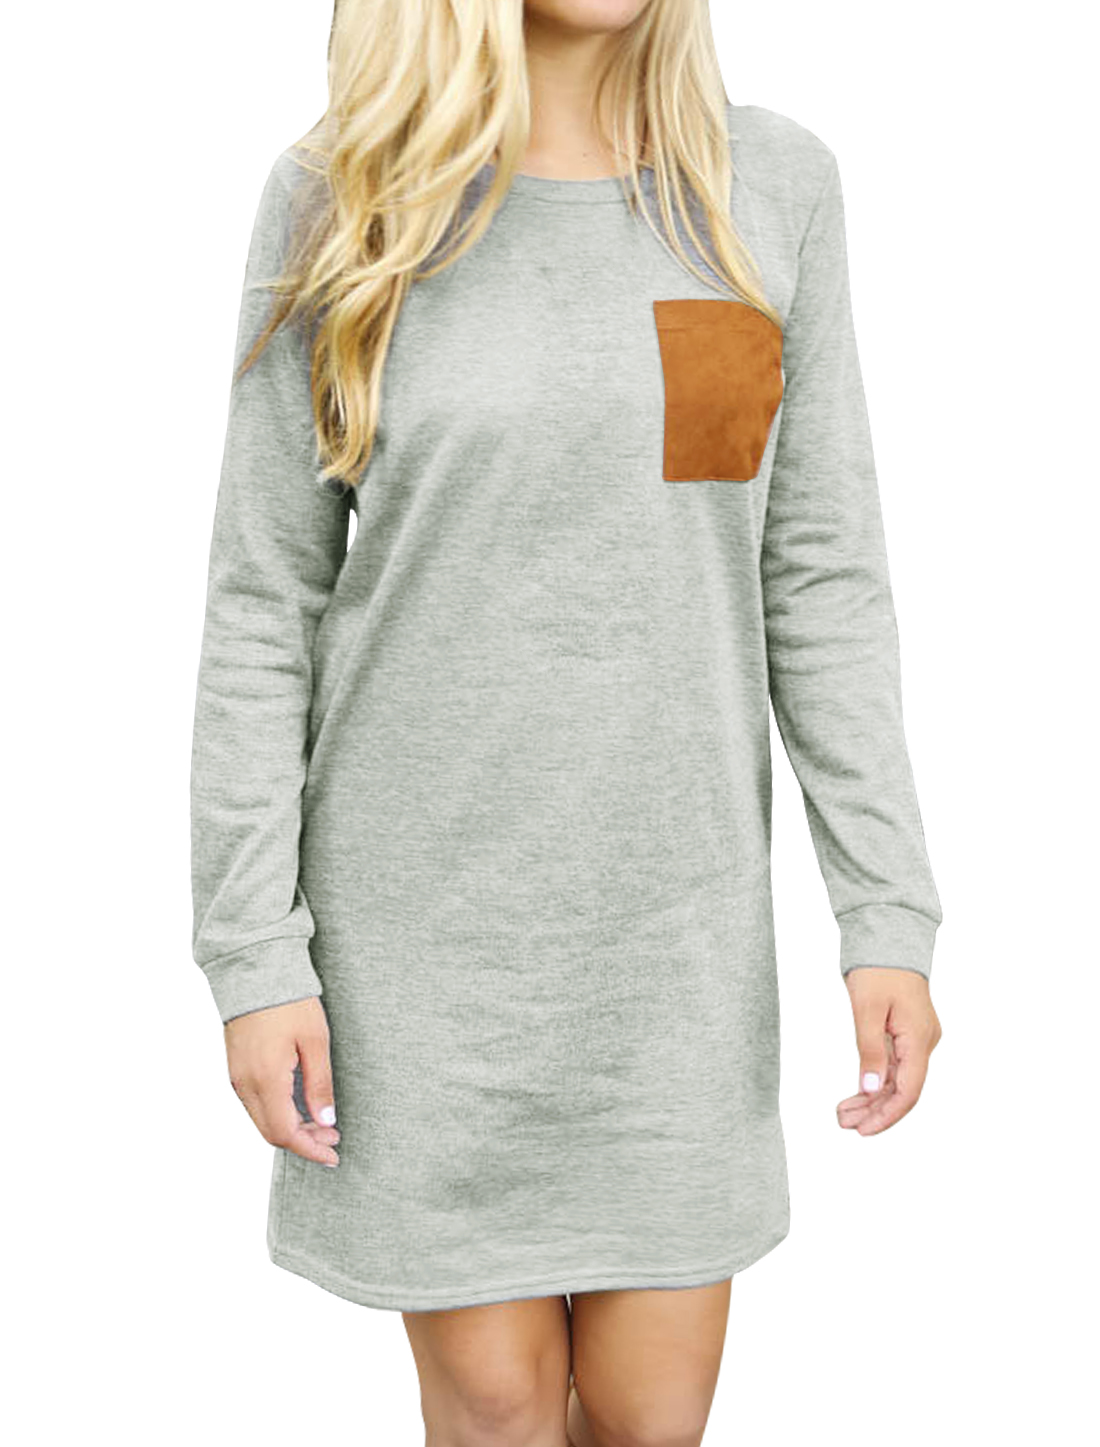 Women Crew Neck Long Sleeves Elbow Patch Paneled Tunic Dress Gray S